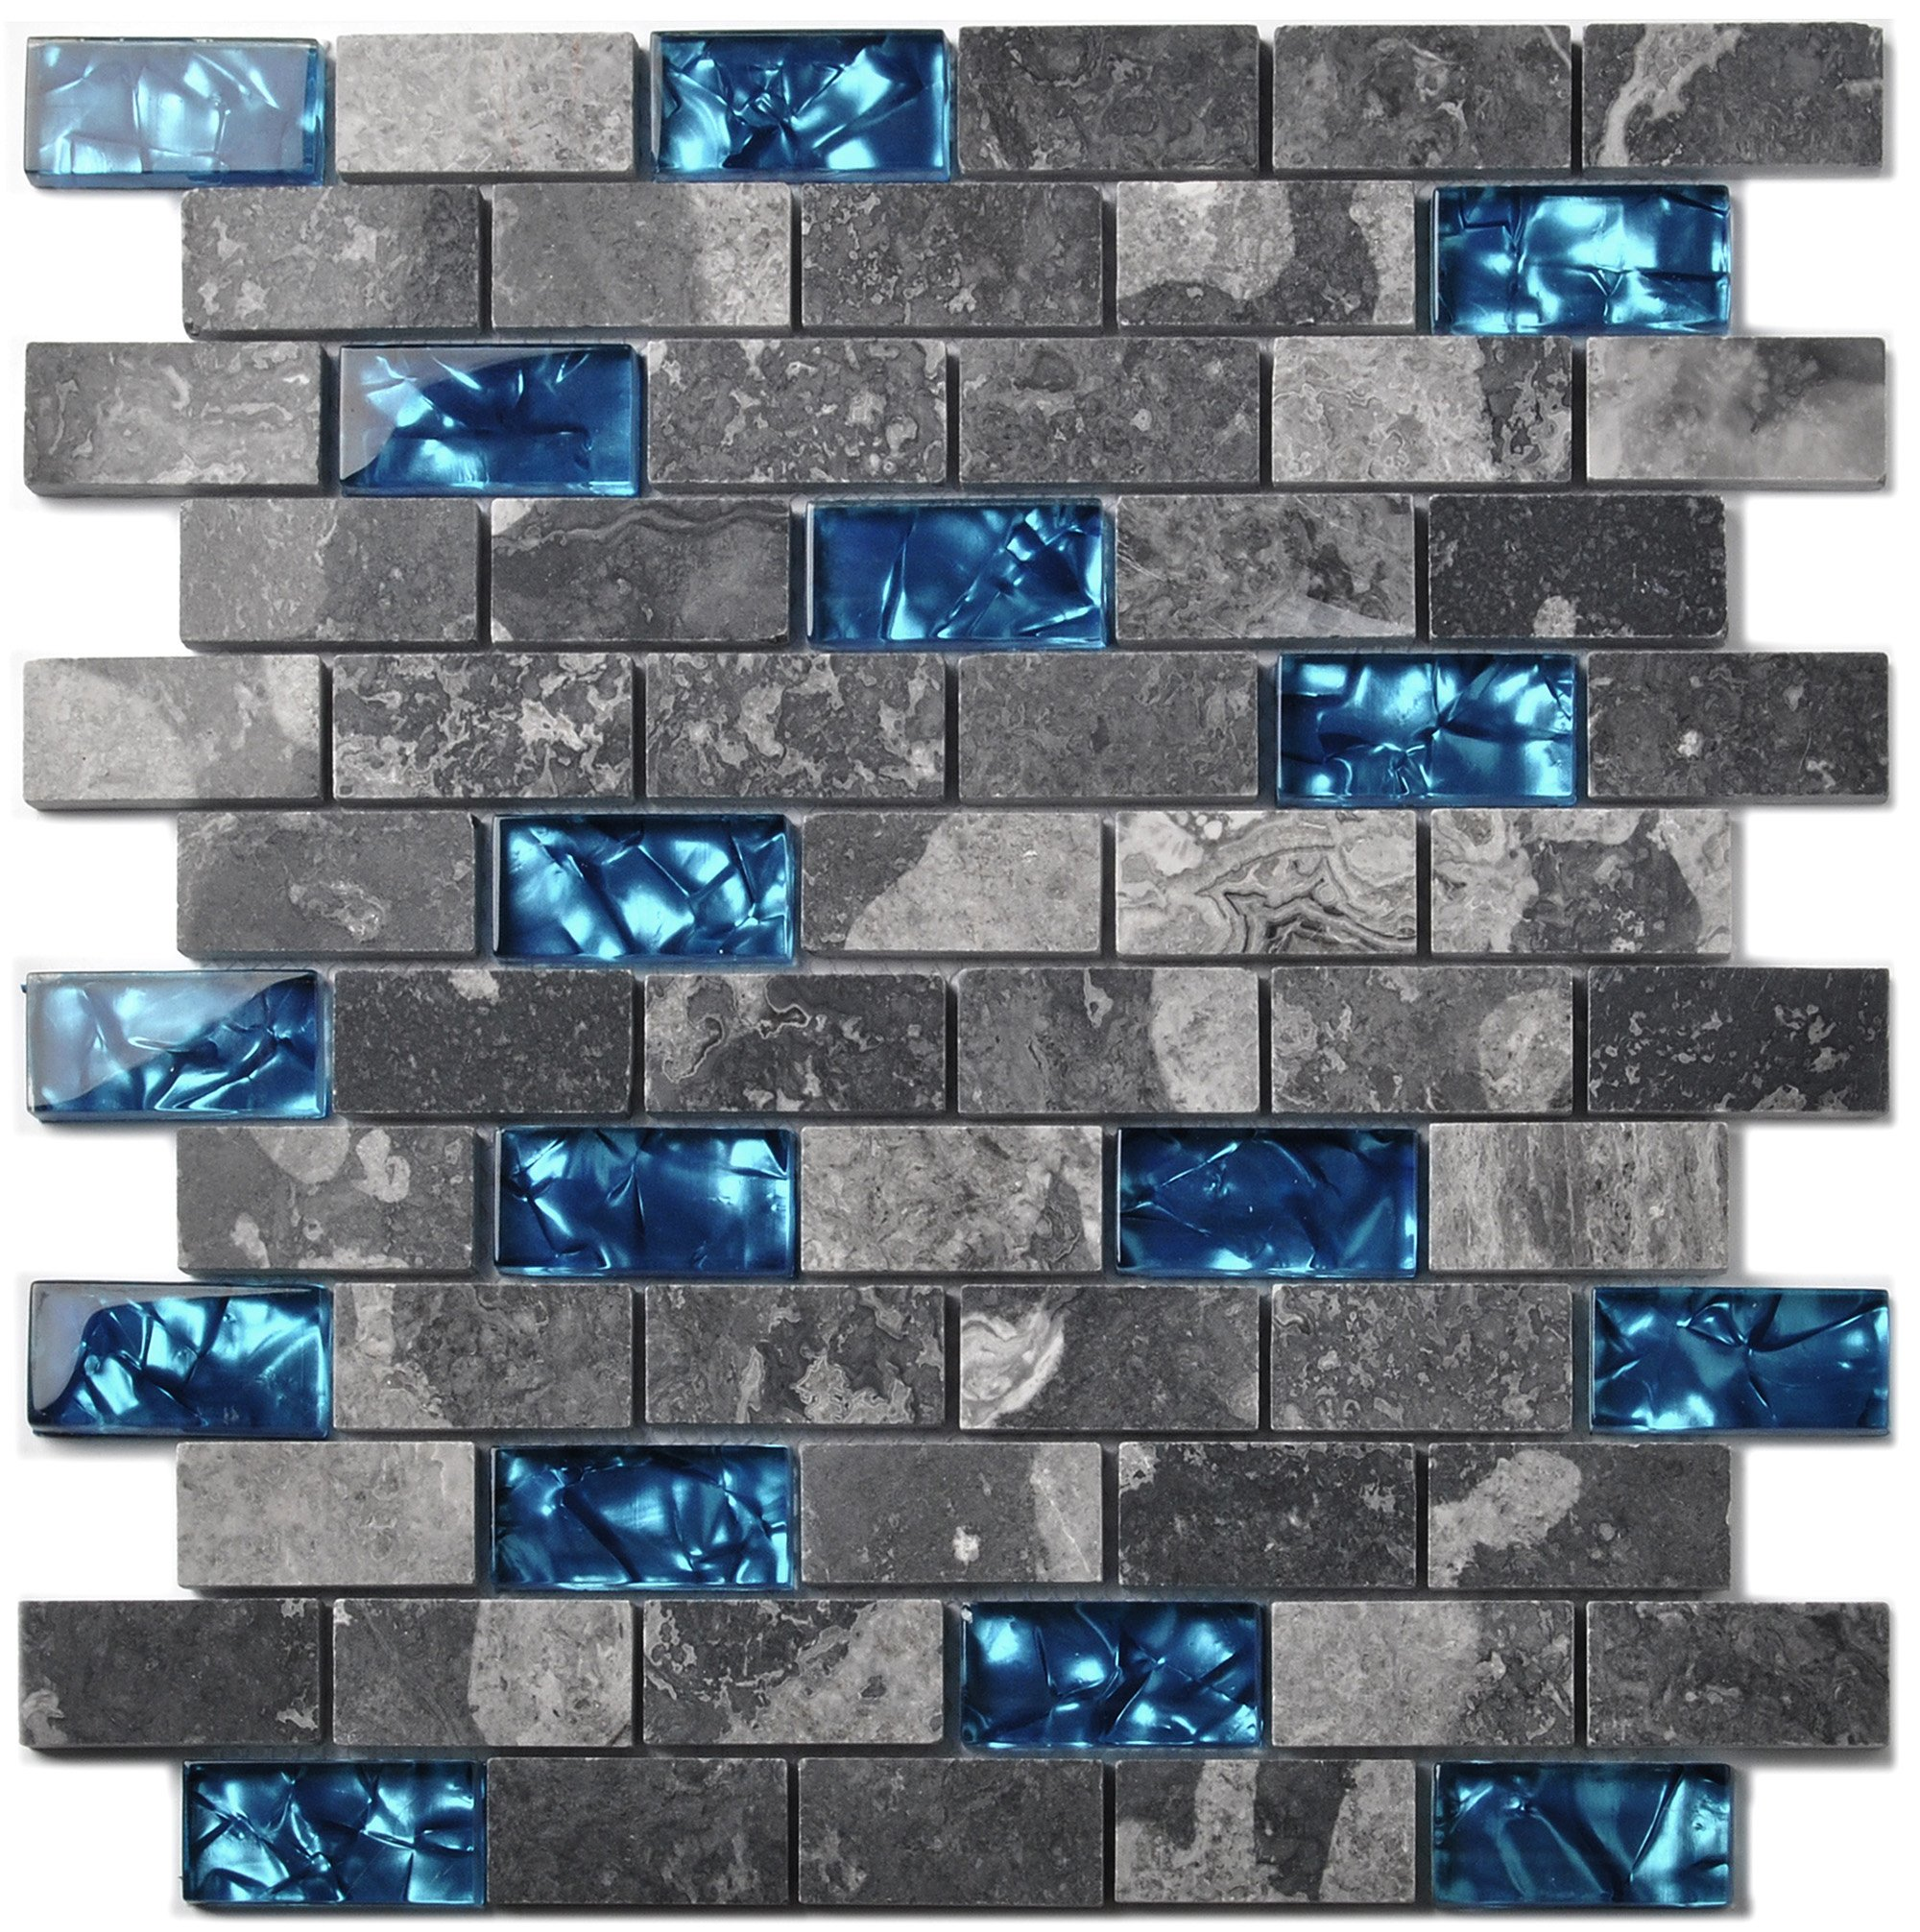 Ocean Blue Glass Nature Stone Tile Kitchen Backsplash 3D Bath Shower Accent Wall Decor Gray Wave Marble 1 x 2 Subway Art Mosaics TSTNB03 (11 PCS [11.8'' X 11.8''/each]) by TST MOSAIC TILES